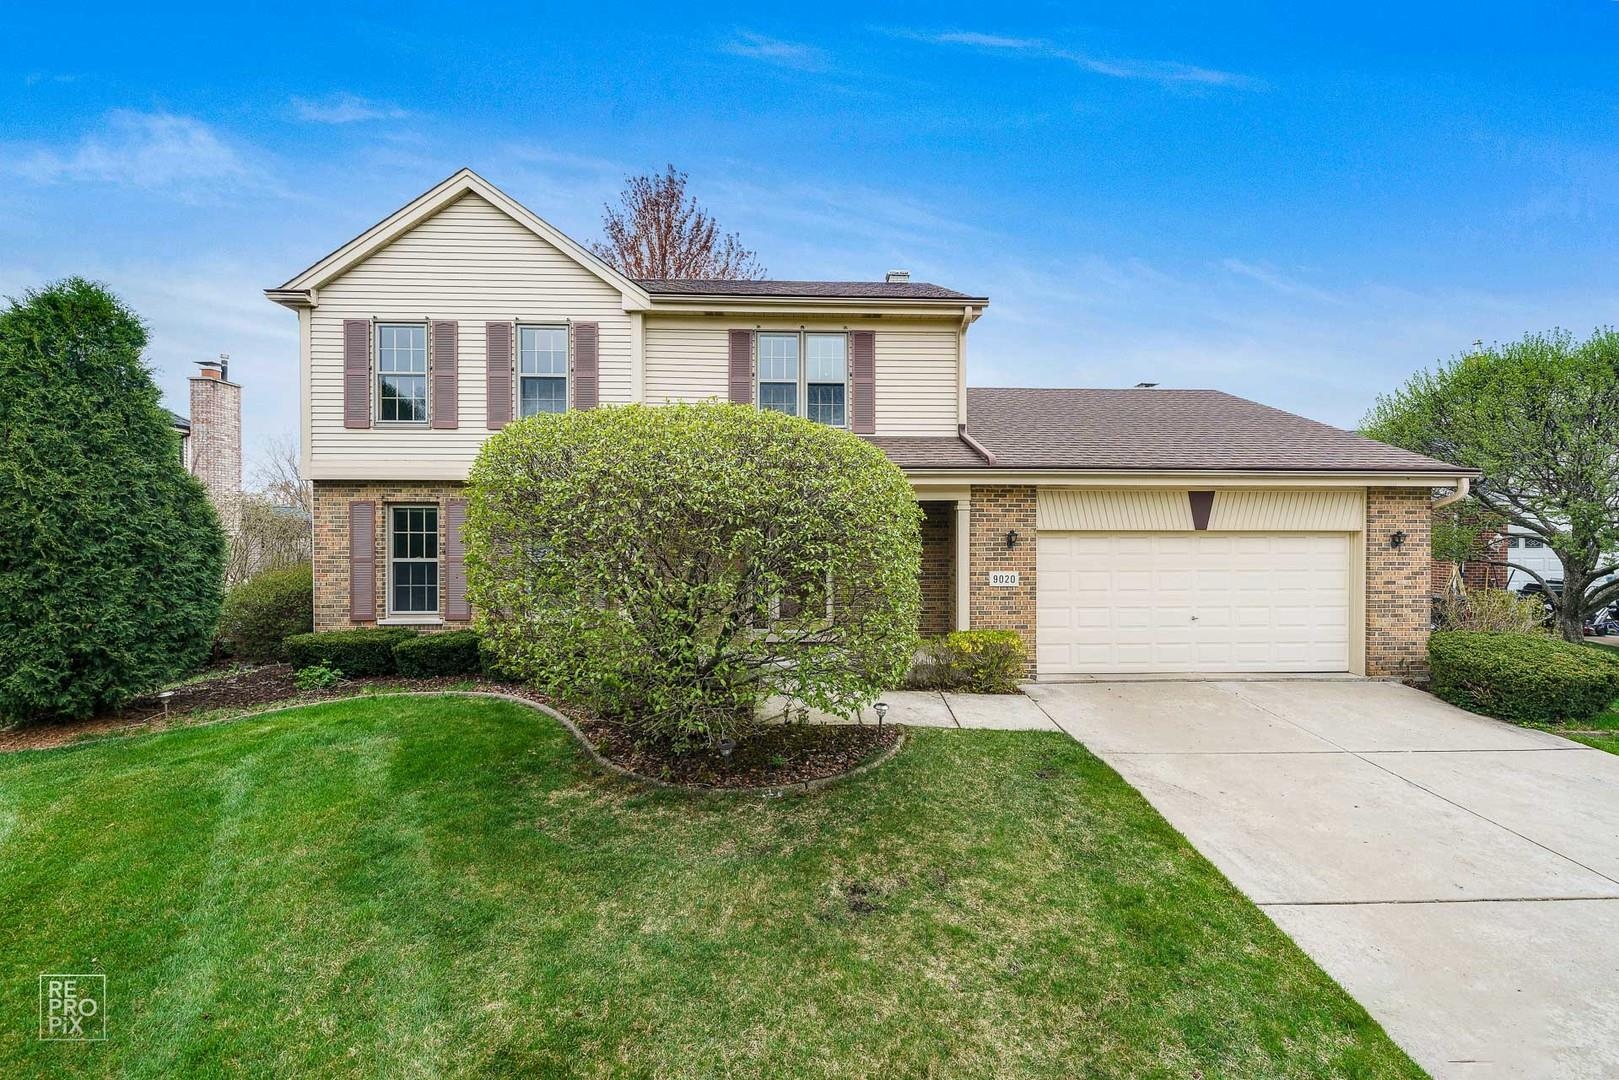 9020 Hampstead Court, Woodridge, IL 60517 - #: 11018895